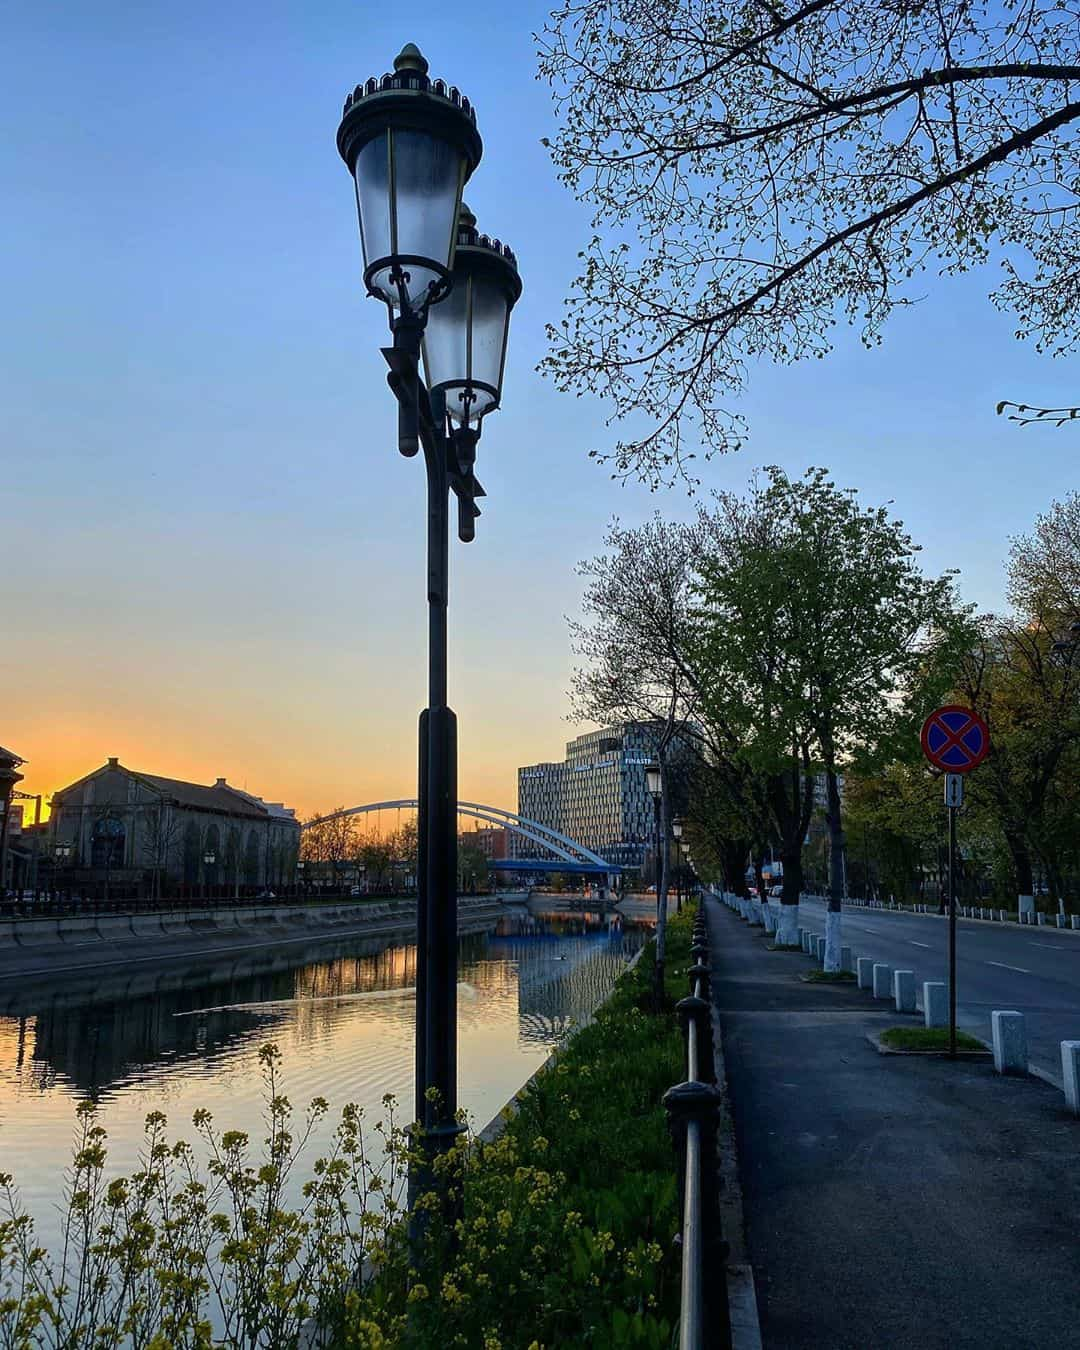 Romania itinerary: Bucharest